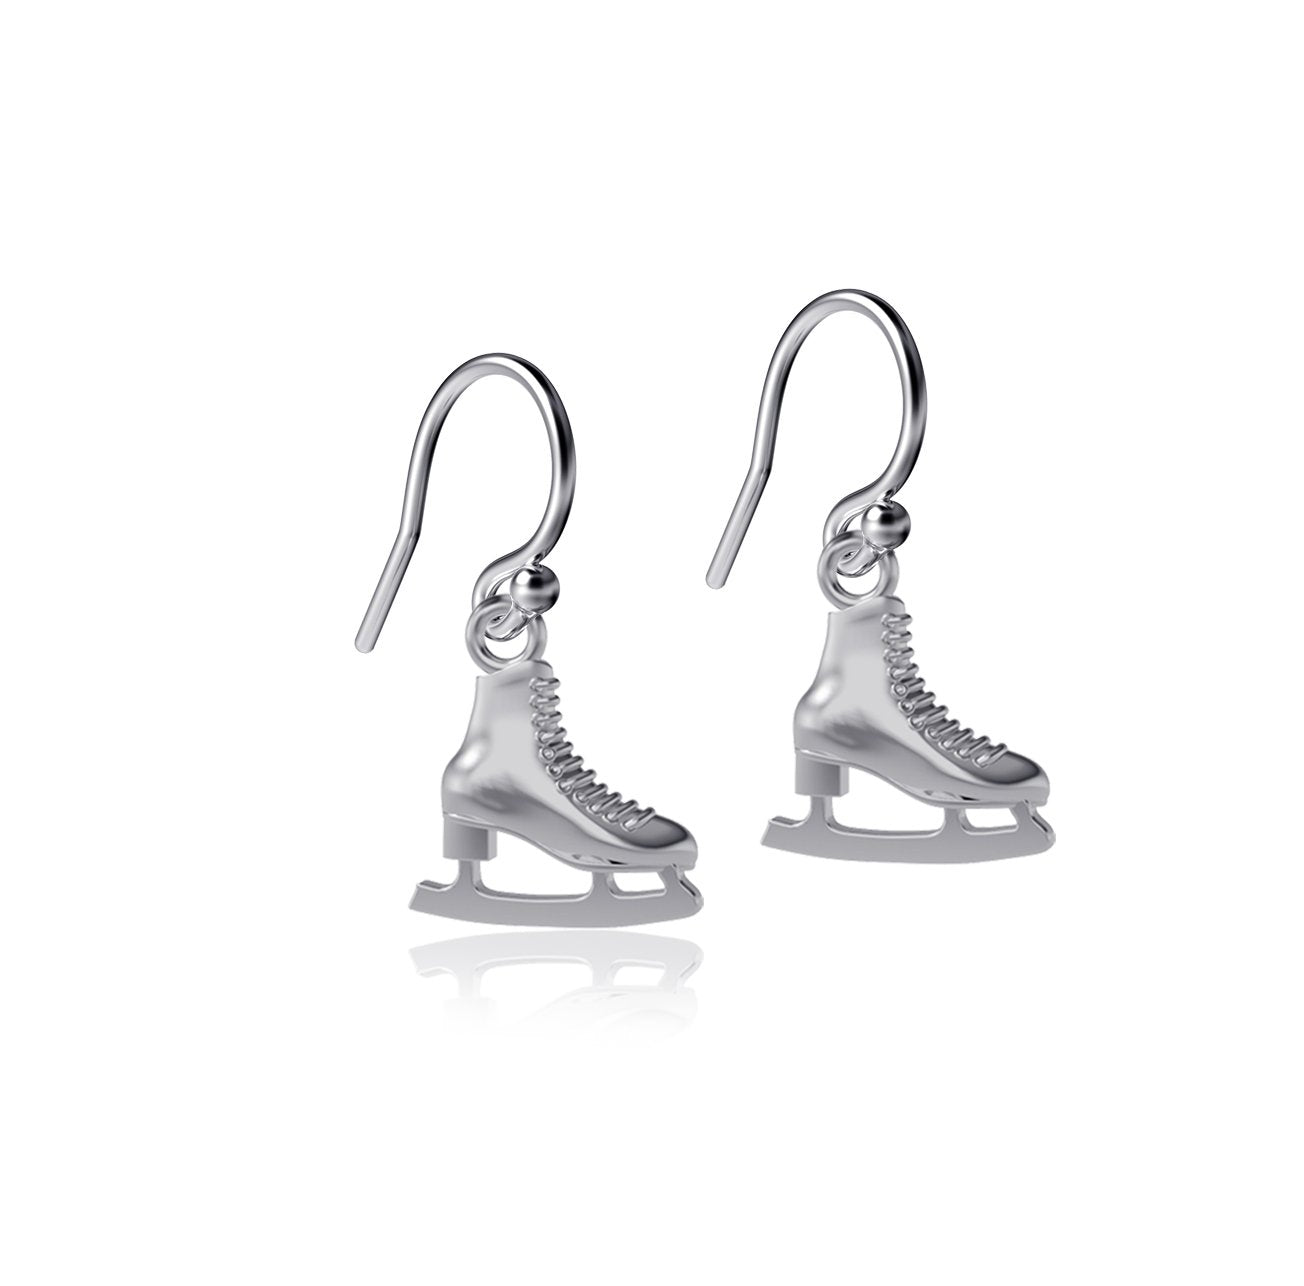 Skate Dangle Earrings